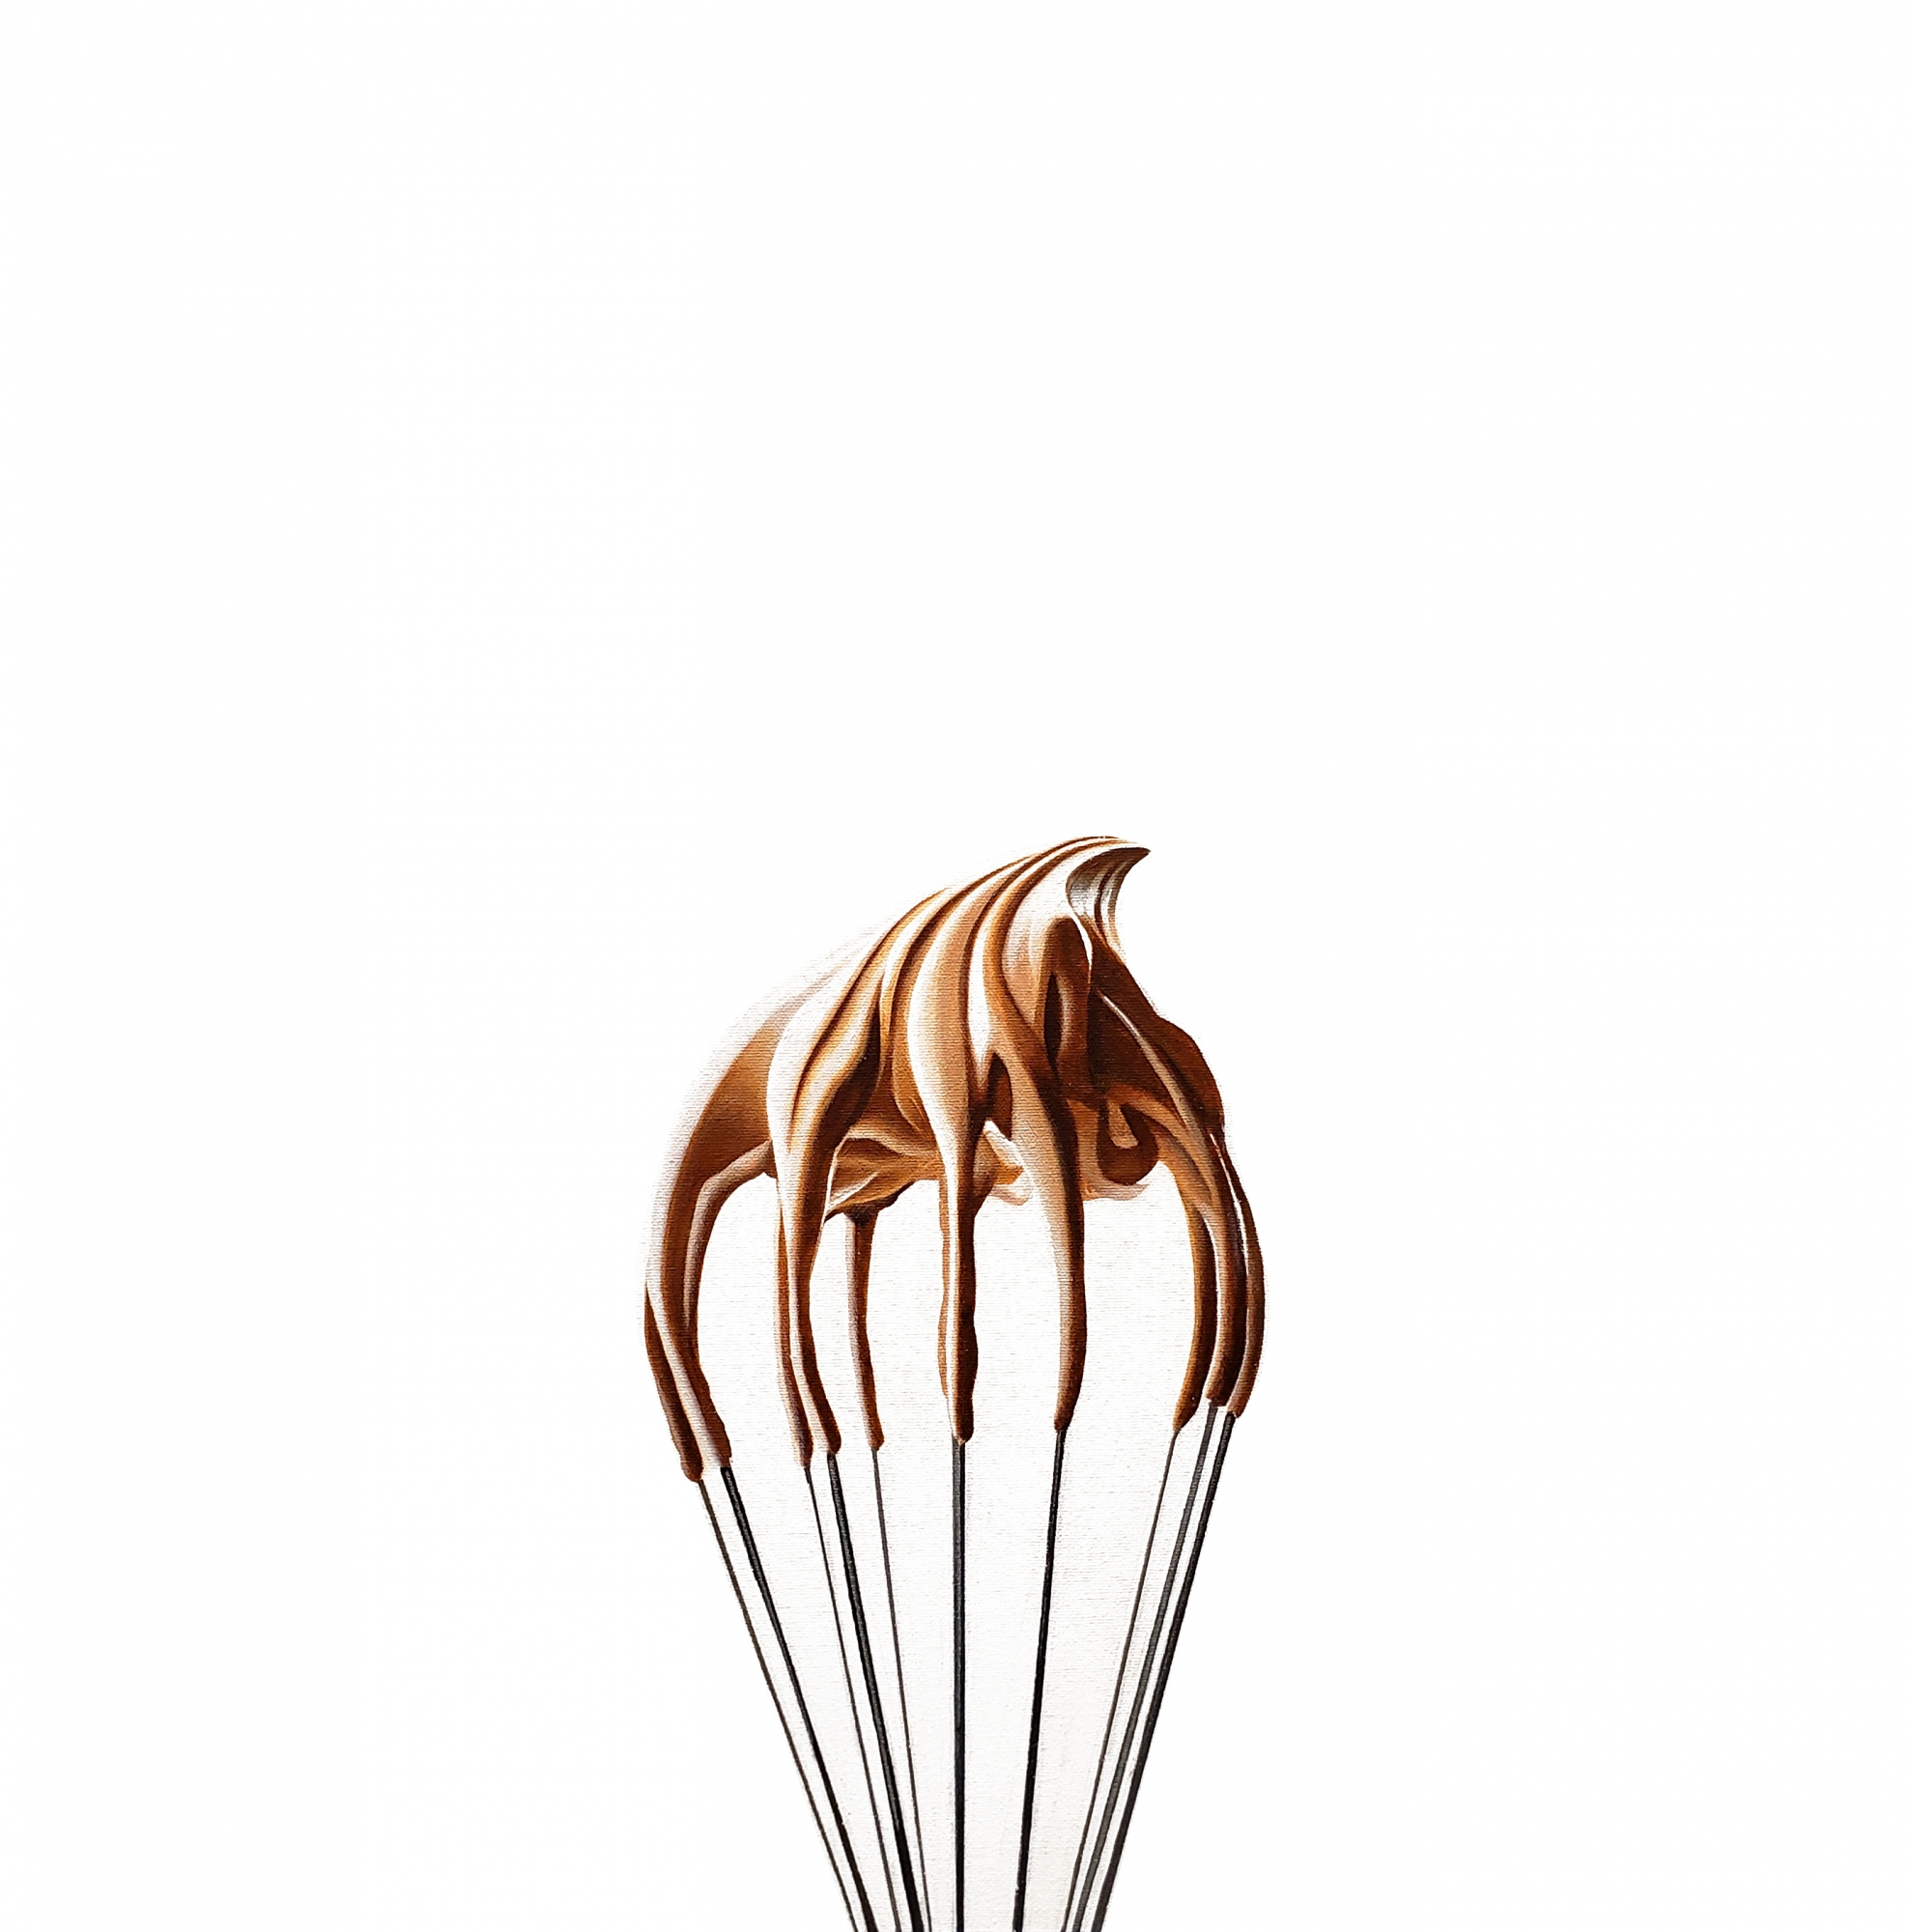 Whisk  by Erin Rothstein